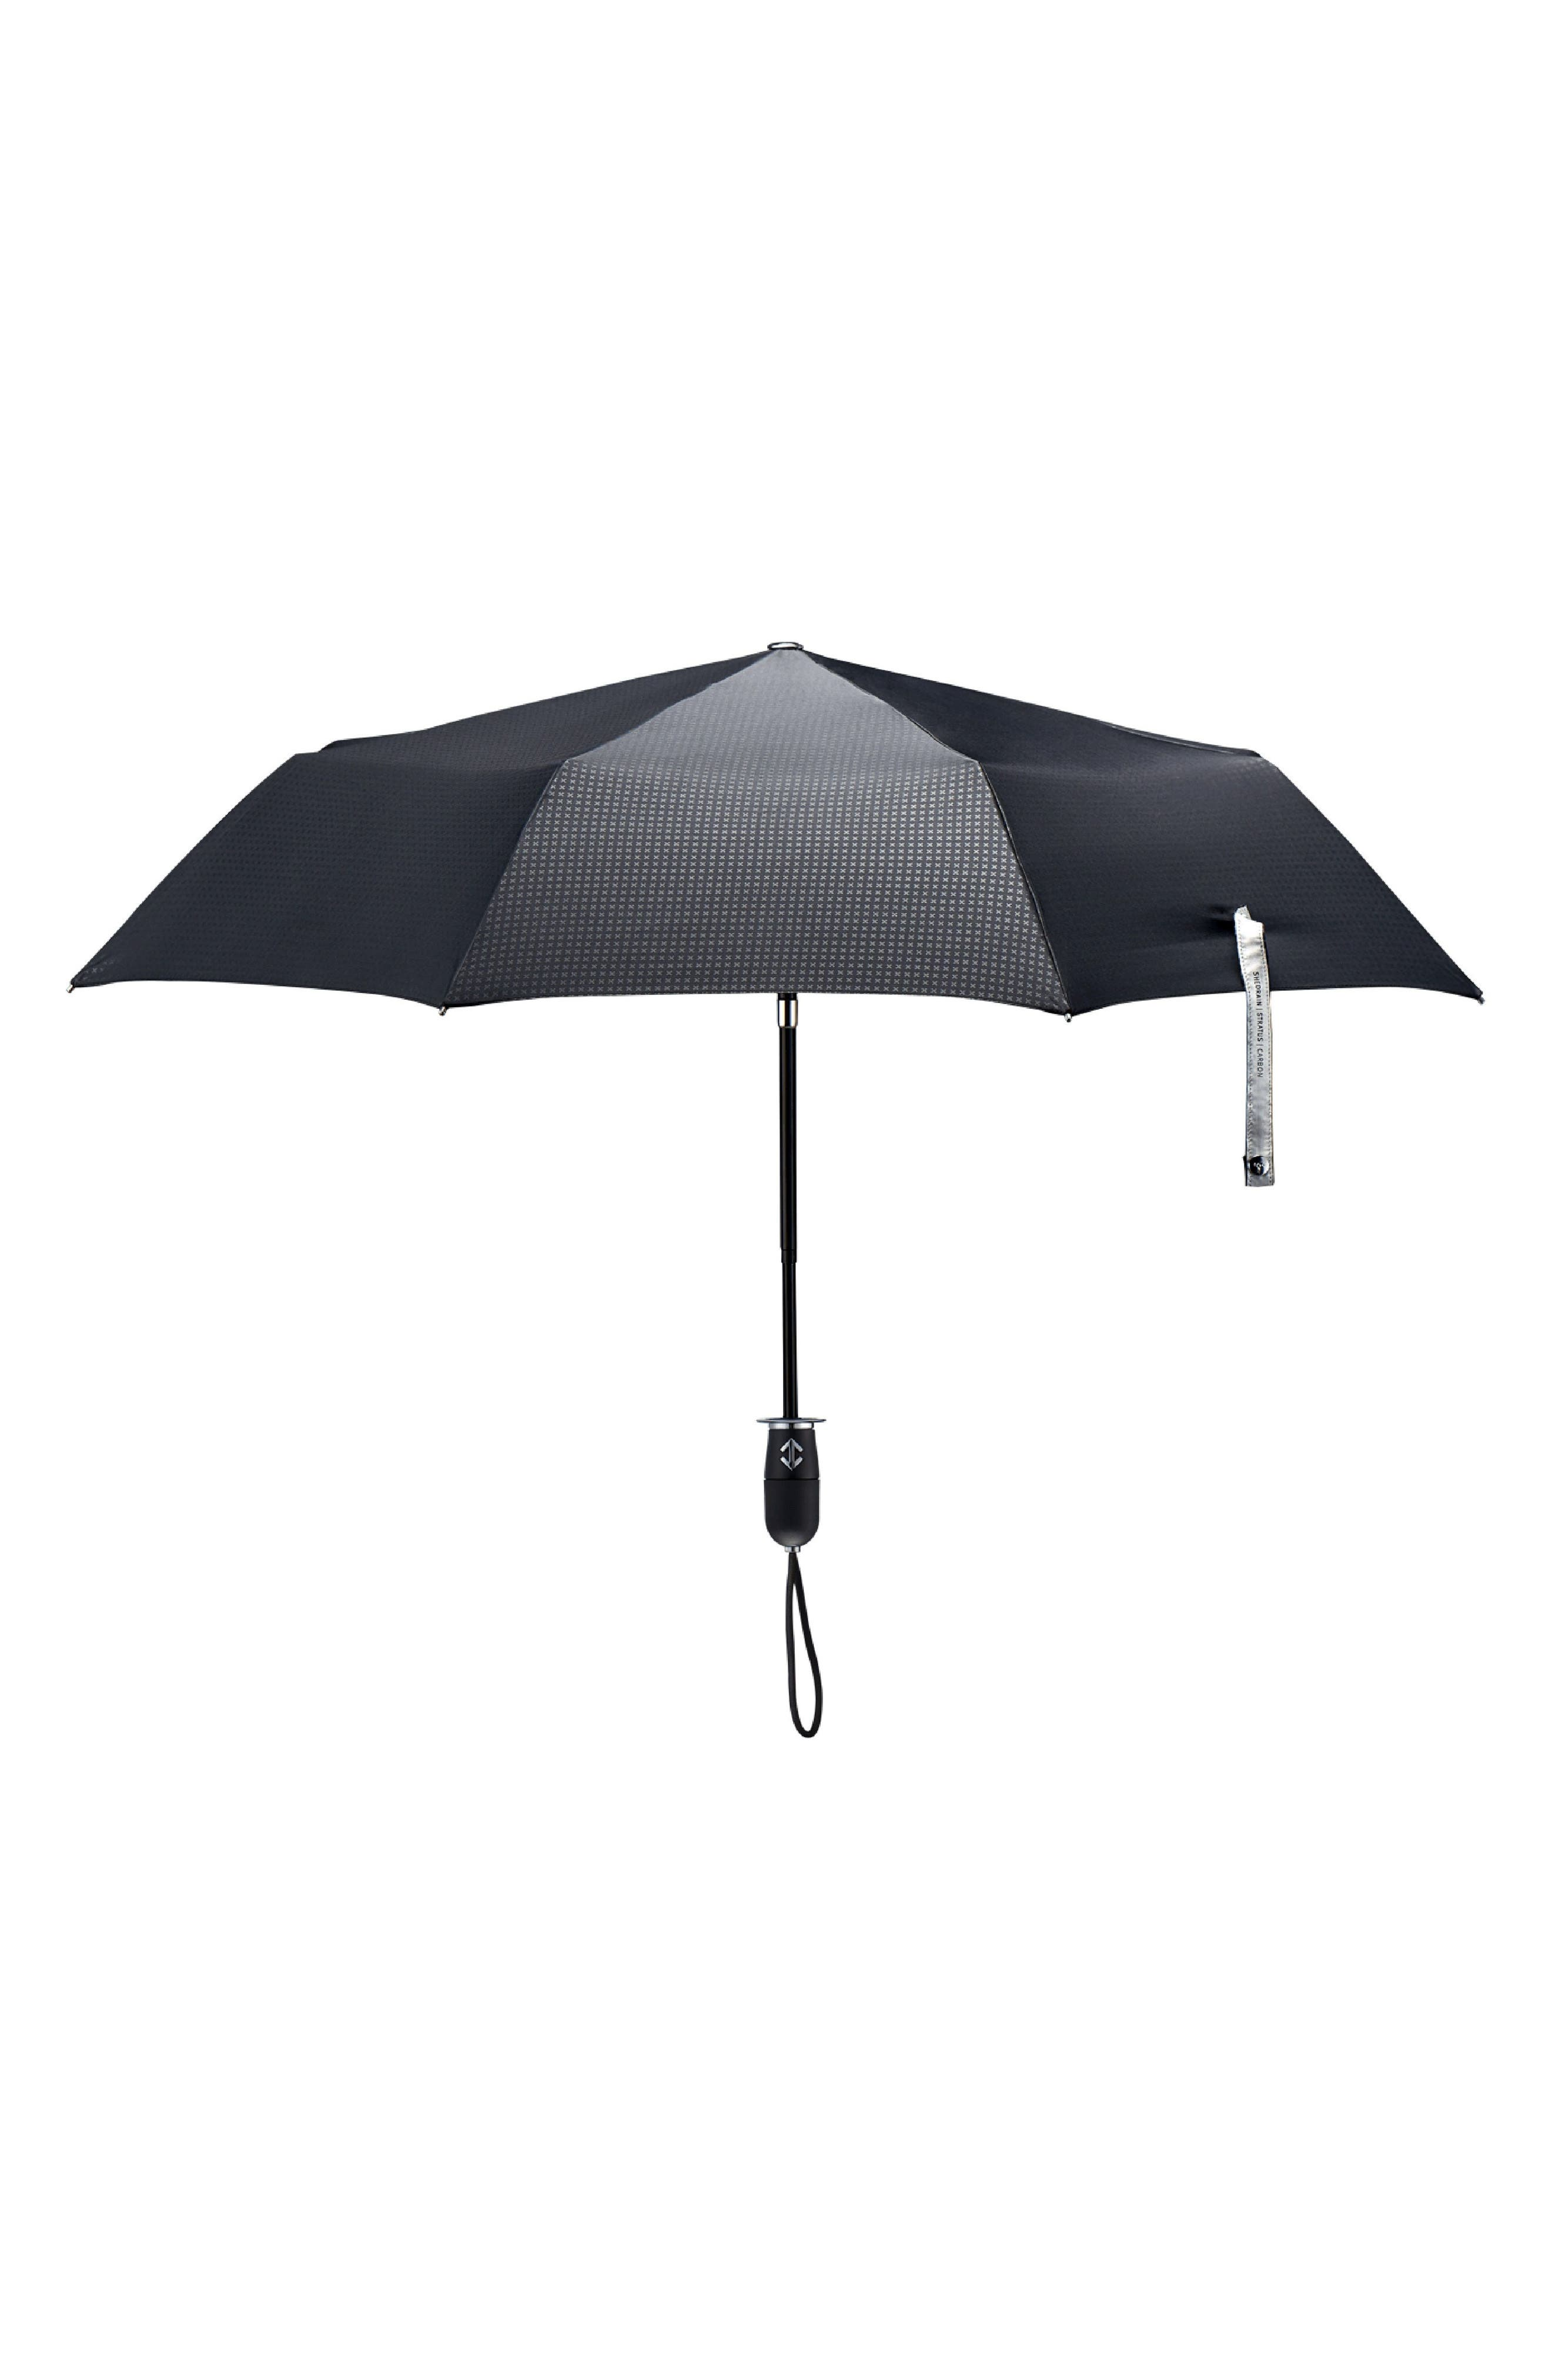 Stratus Auto Open Stick Umbrella,                             Main thumbnail 1, color,                             001